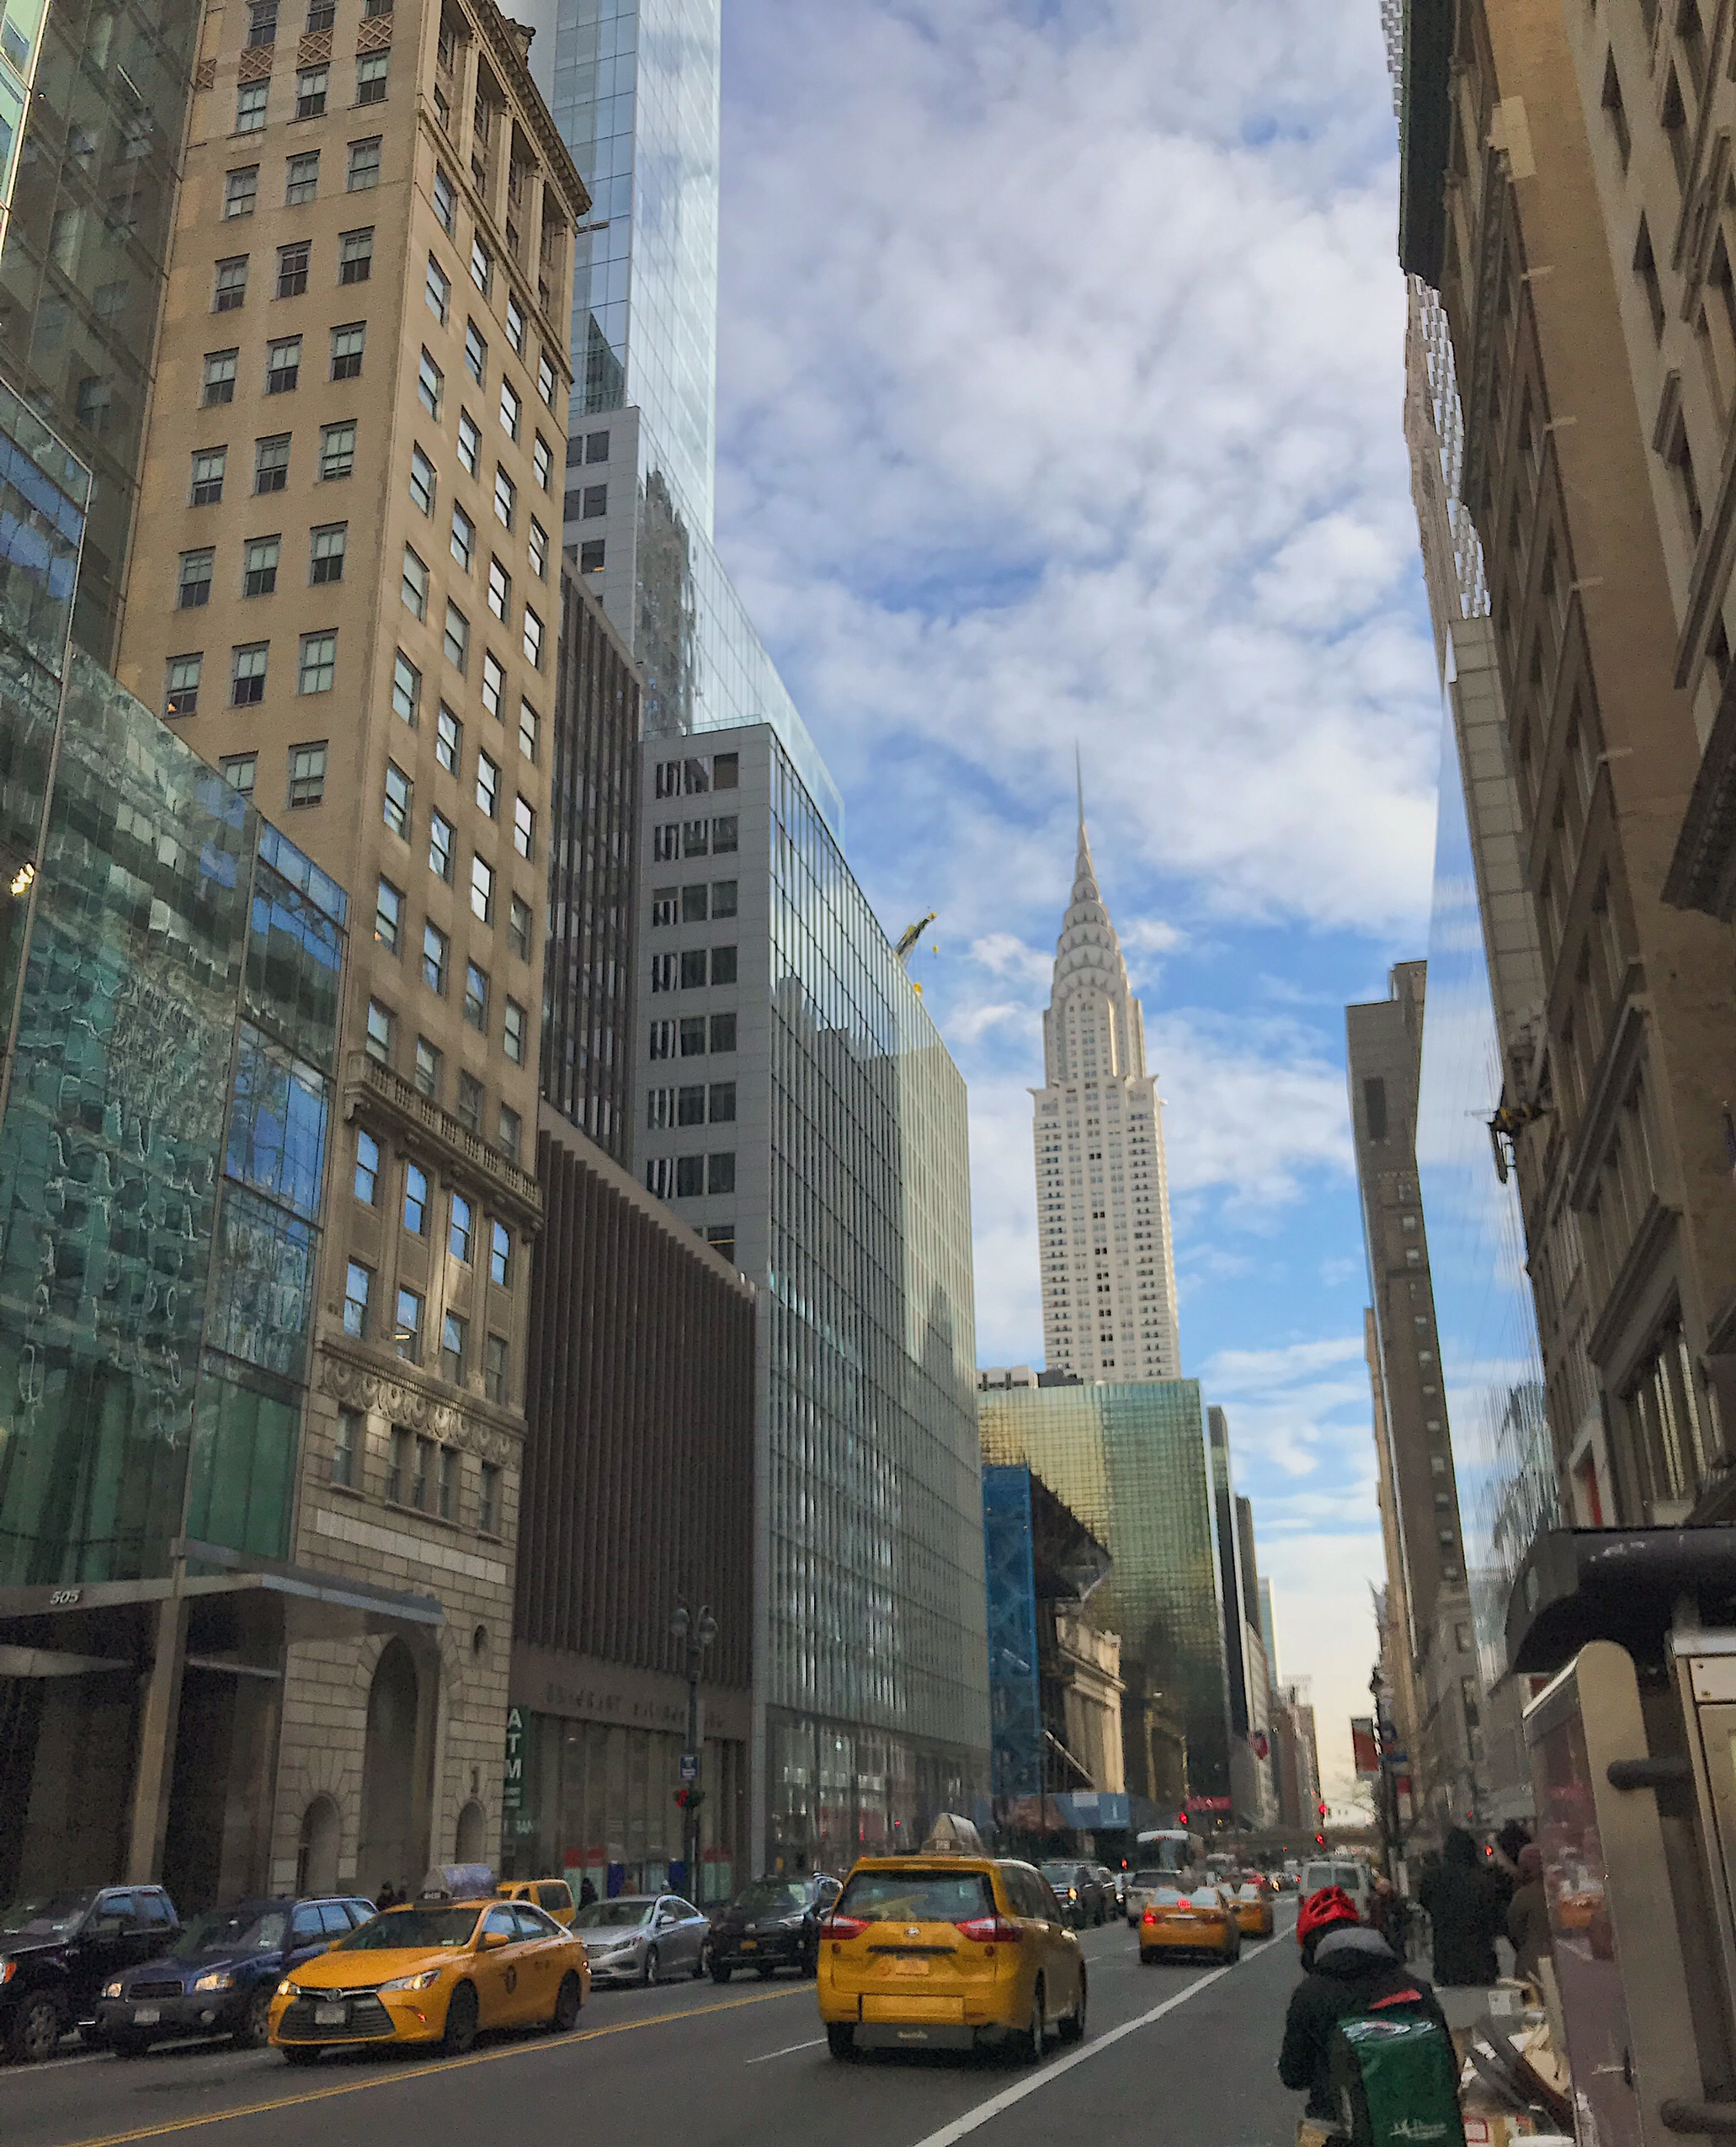 Image of the Chrysler building in New York